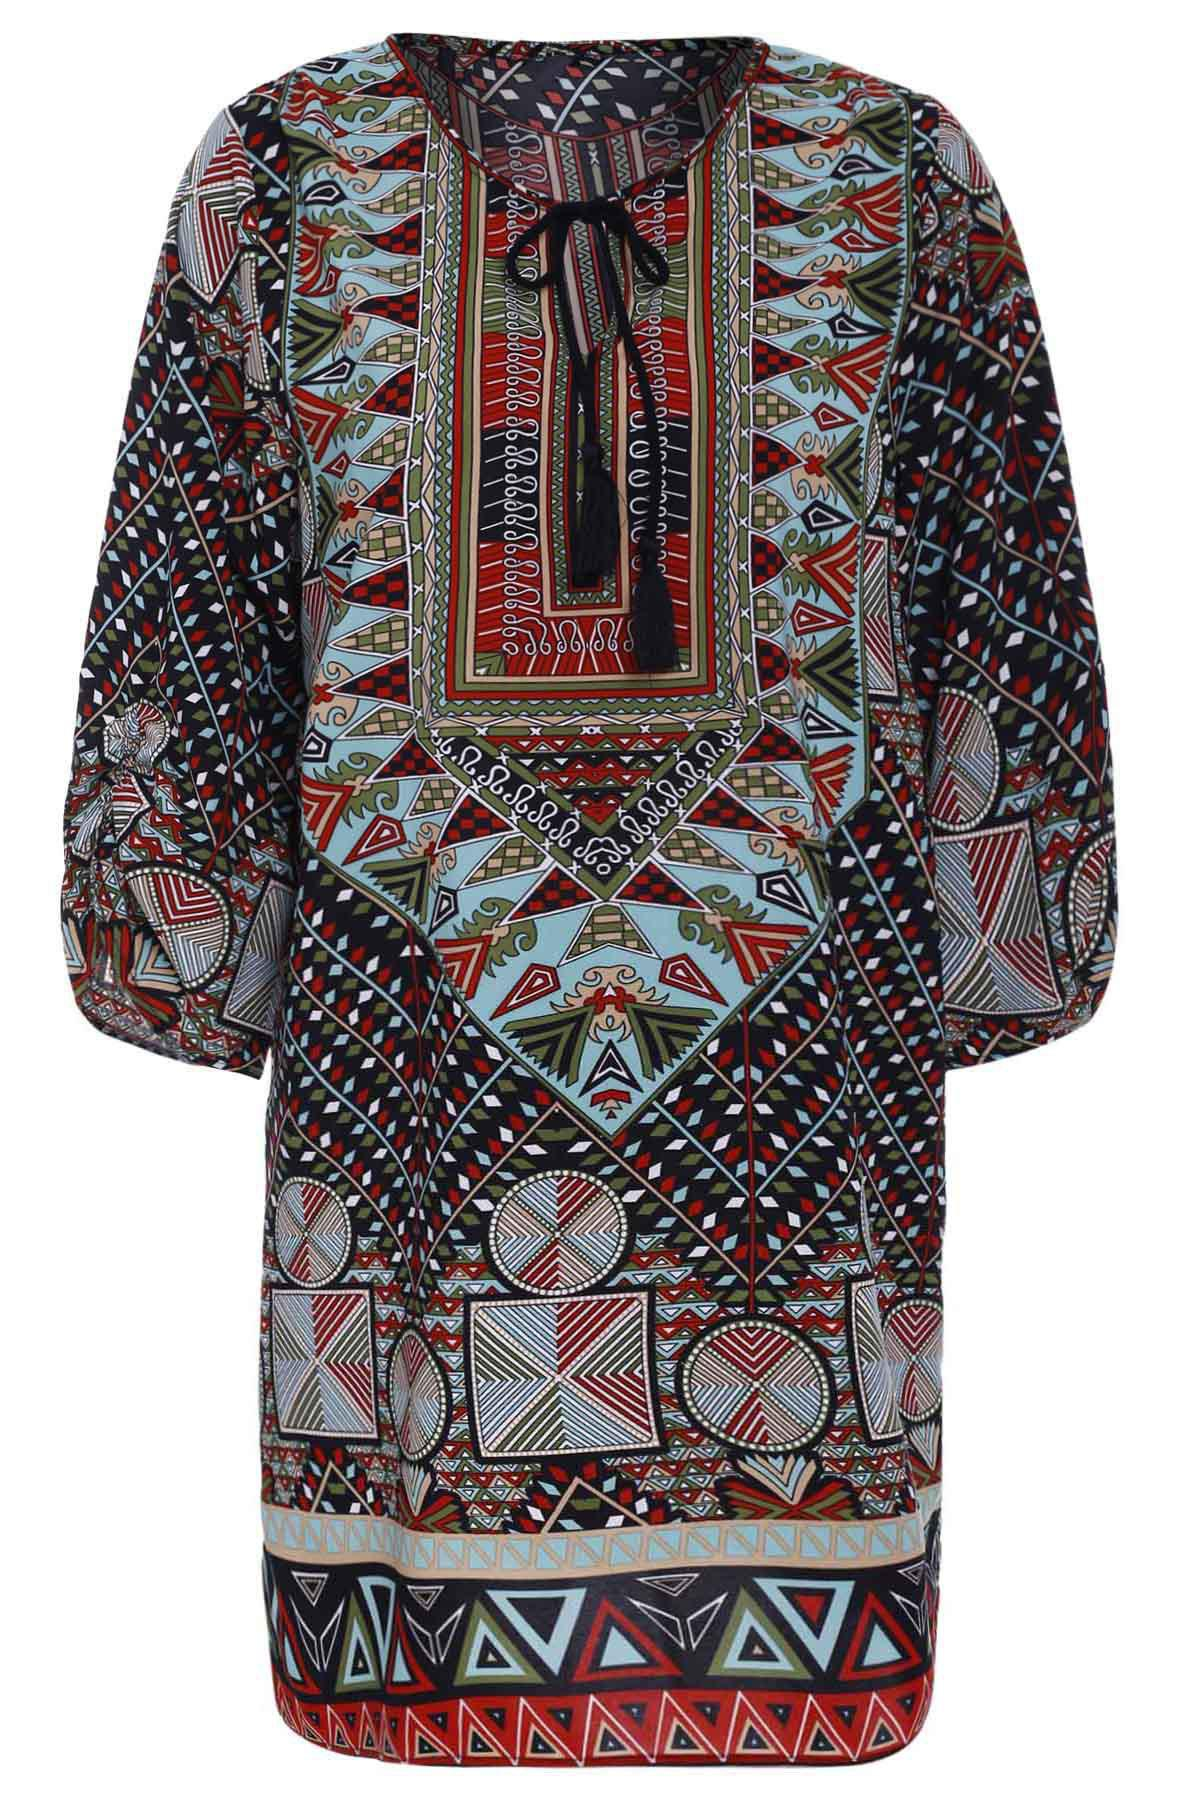 Women's Fashionable 3/4 Sleeve Lace-Up Colorful Ethnic Print V-Neck Dress - COLORMIX L